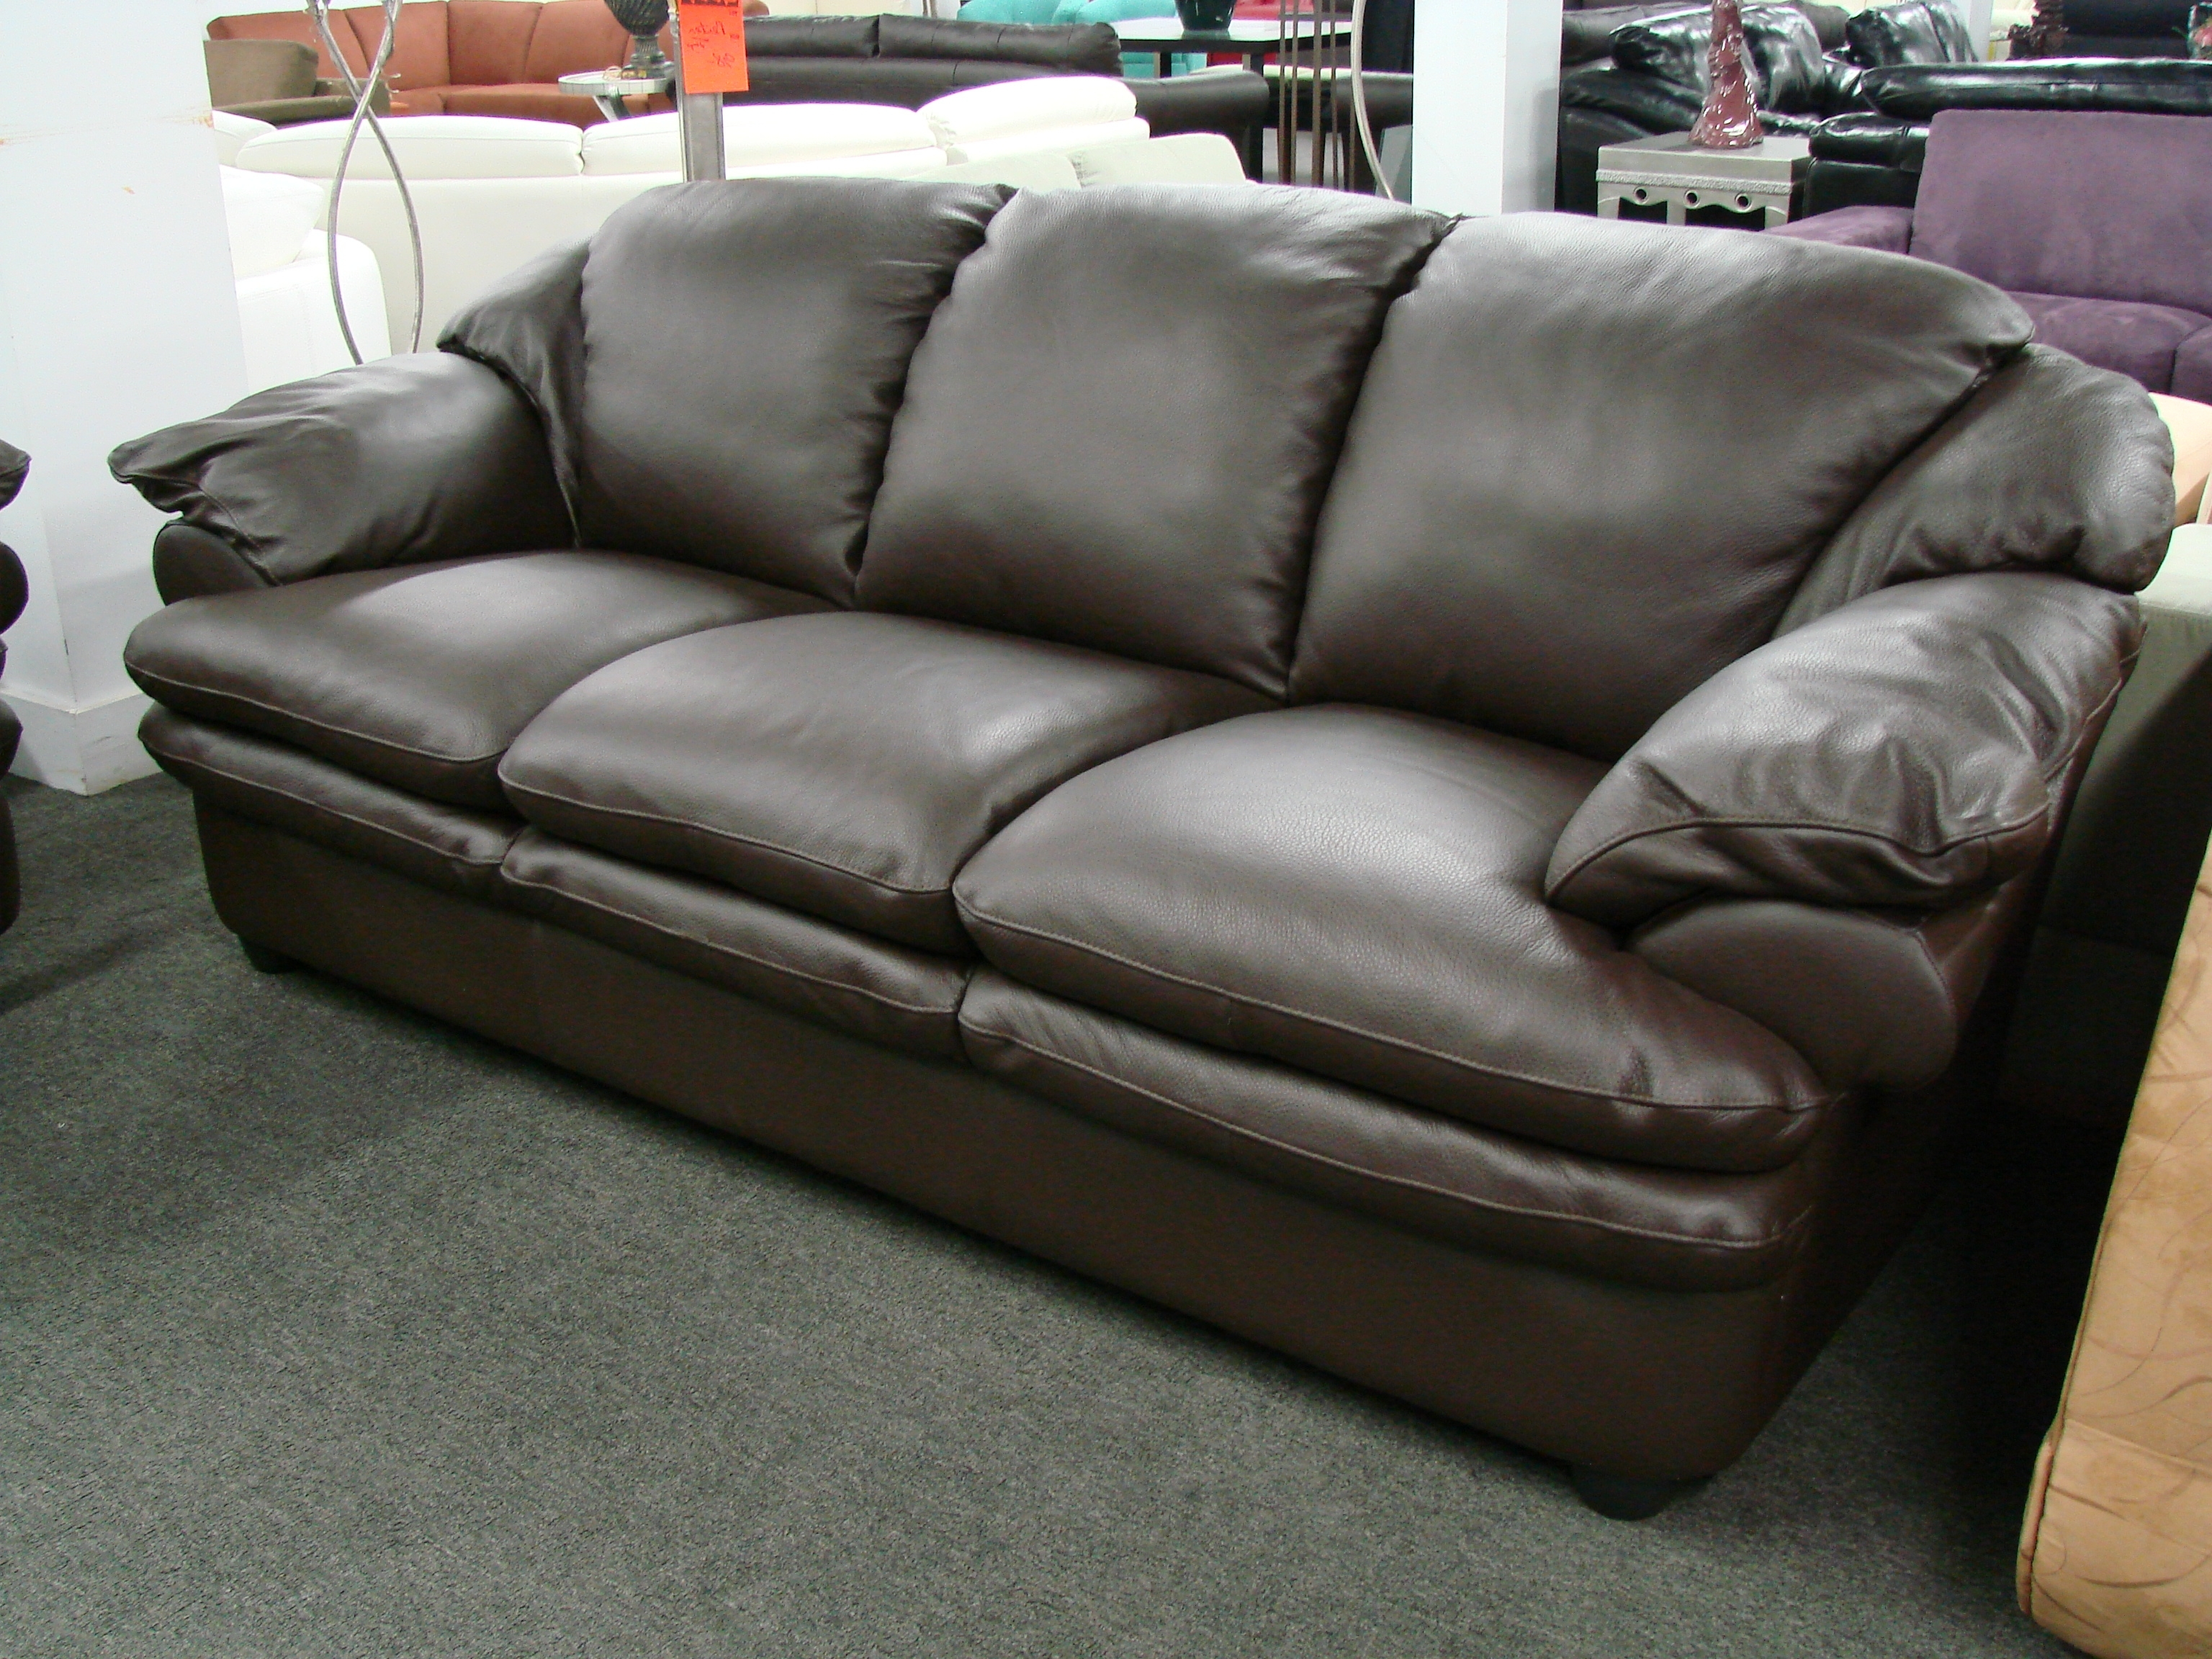 Famous Ottawa Sale Sectional Sofas Within Leather Sectional Sofa With Recliners Sofas Ottawa For Sale Couch (View 5 of 20)